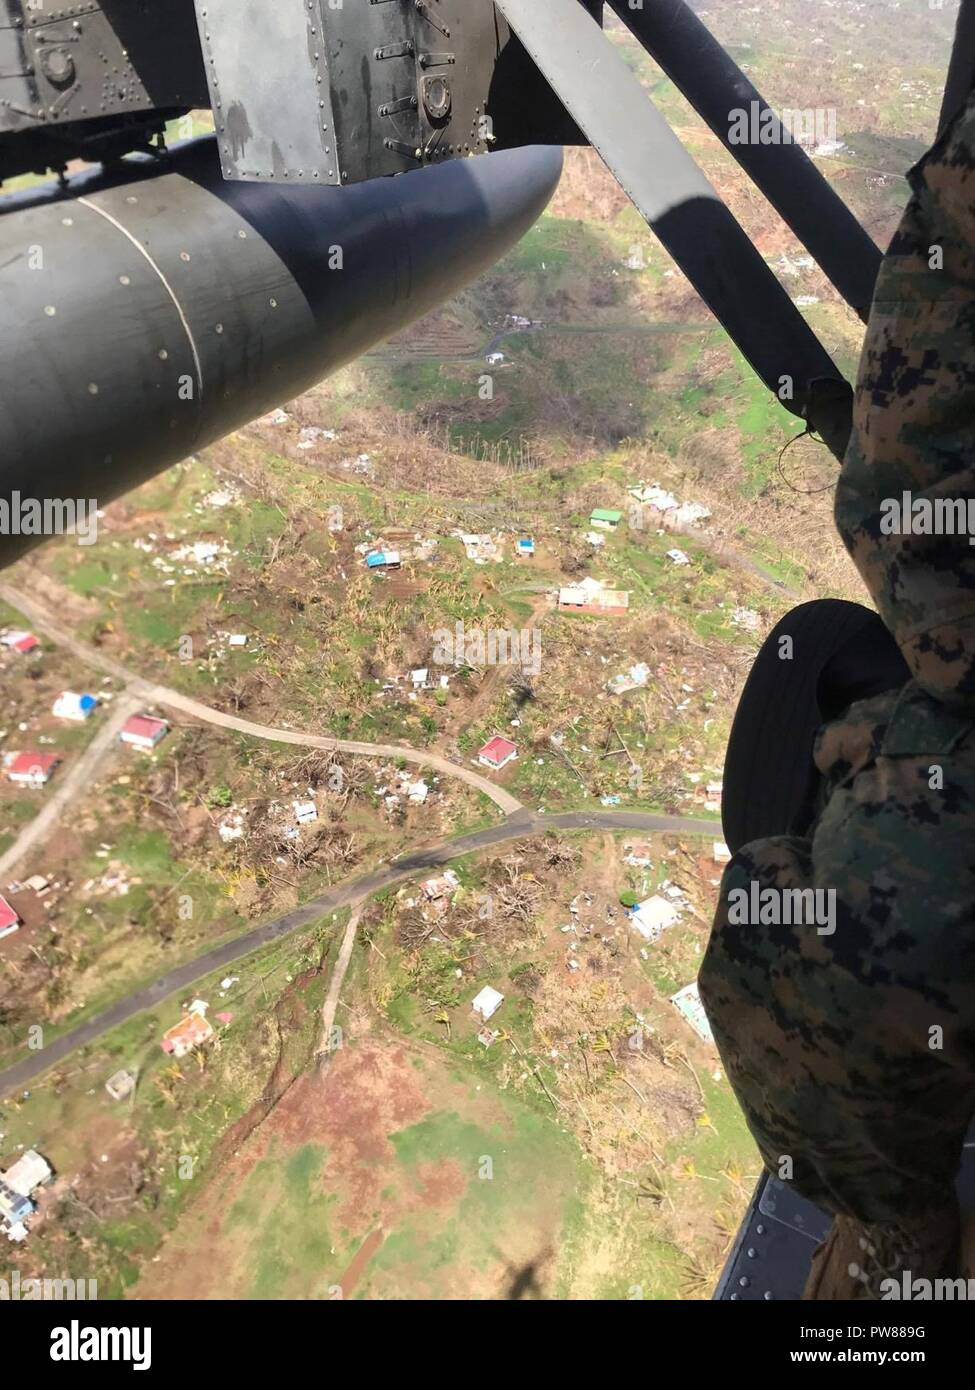 U.S. service members fly over the Caribbean island of Dominica, Oct. 9, 2017. The island was devastated by Hurricane Maria, a Category 5 storm that made landfall Sept. 19, 2017, spurring support from the Joint Base Lewis-McChord community, as well as military installations across the globe. - Stock Image